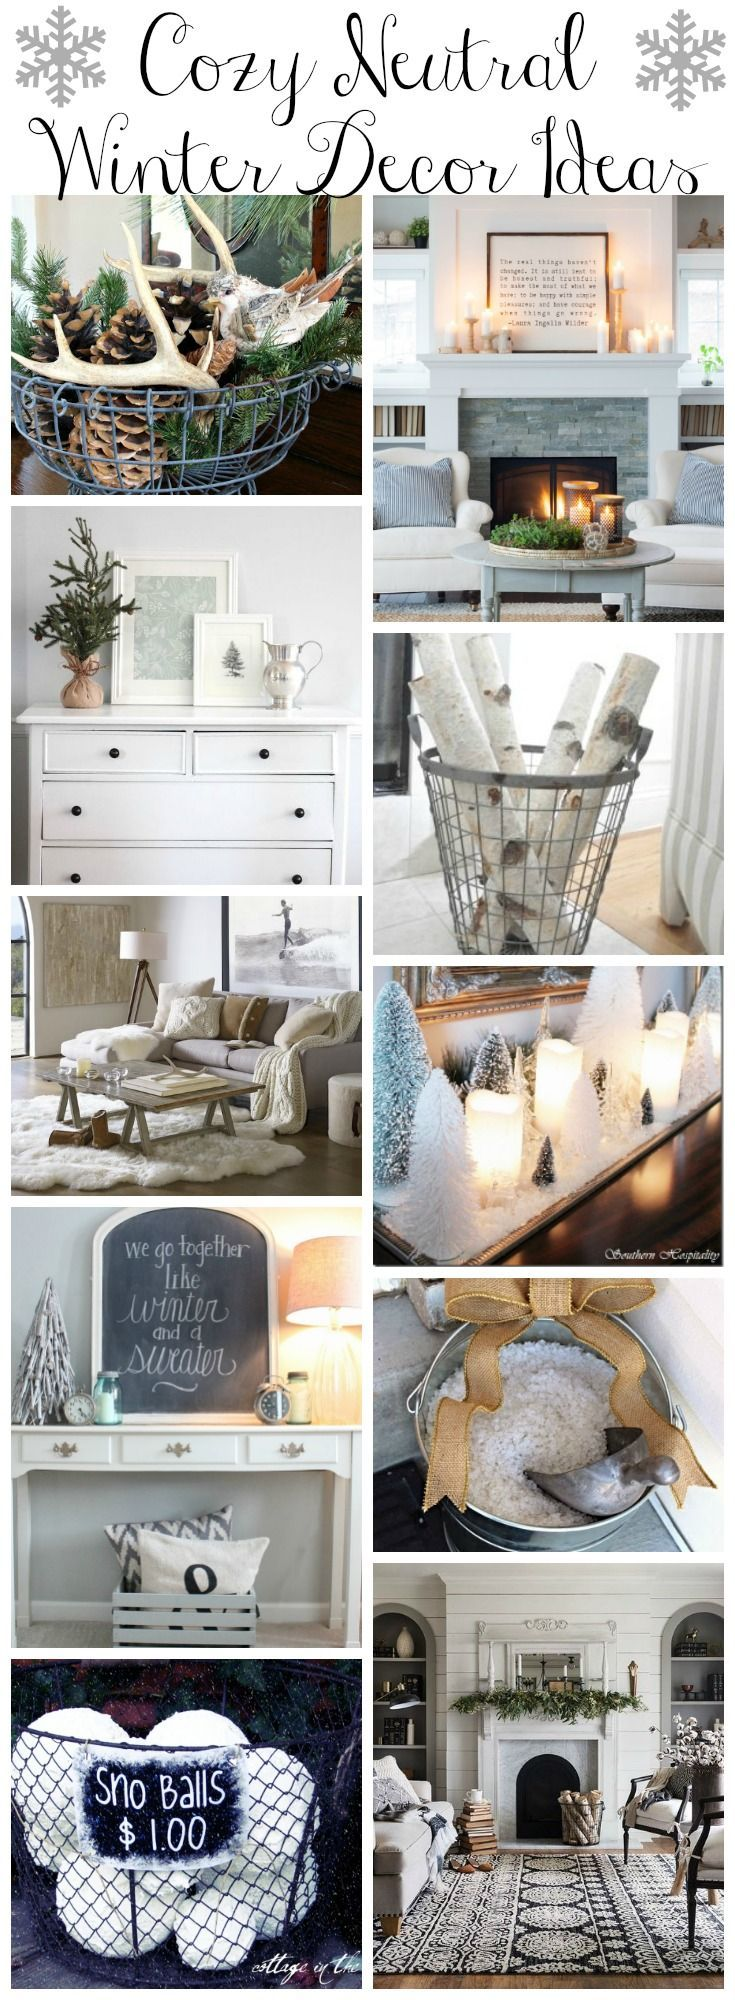 Clean Cozy Neutral Winter Decorating Ideas | Neutral, Cozy and Winter